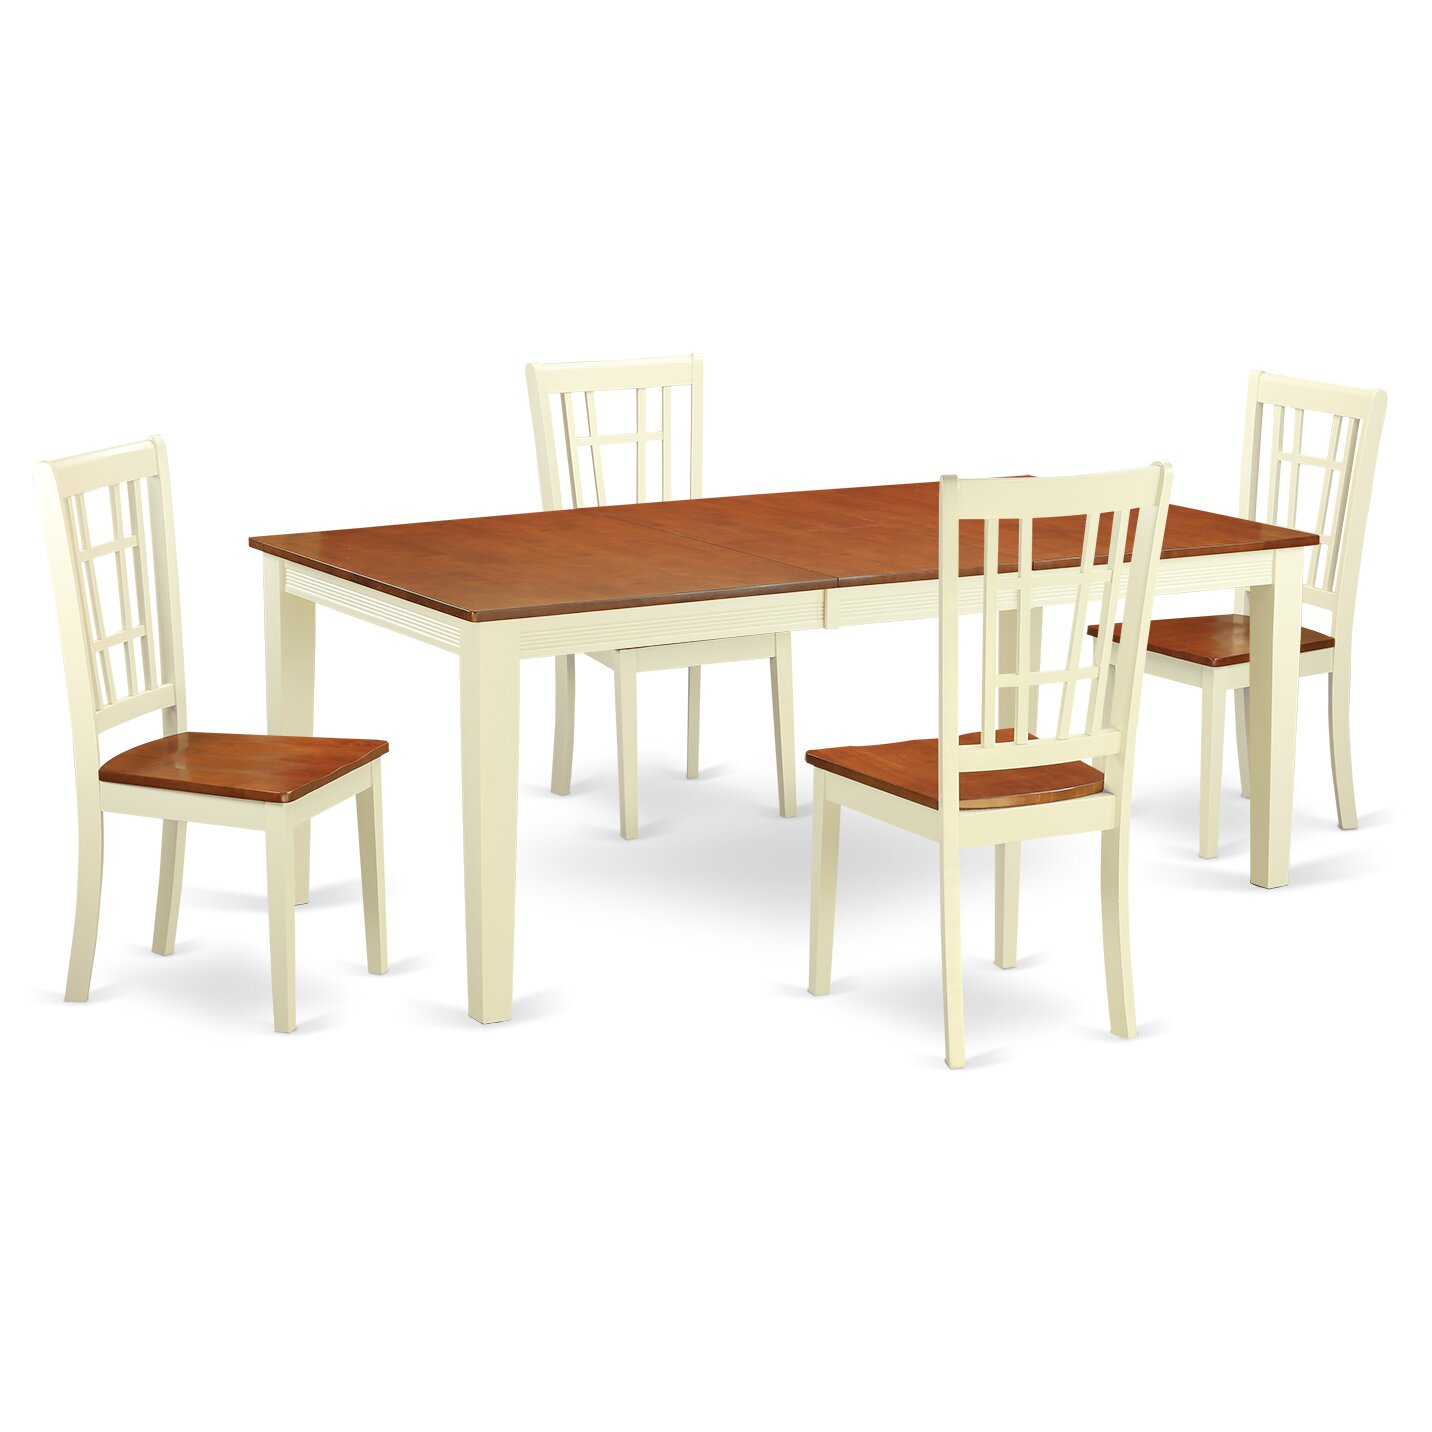 East west quincy 5 piece dining set wayfair for Small dining table and bench set